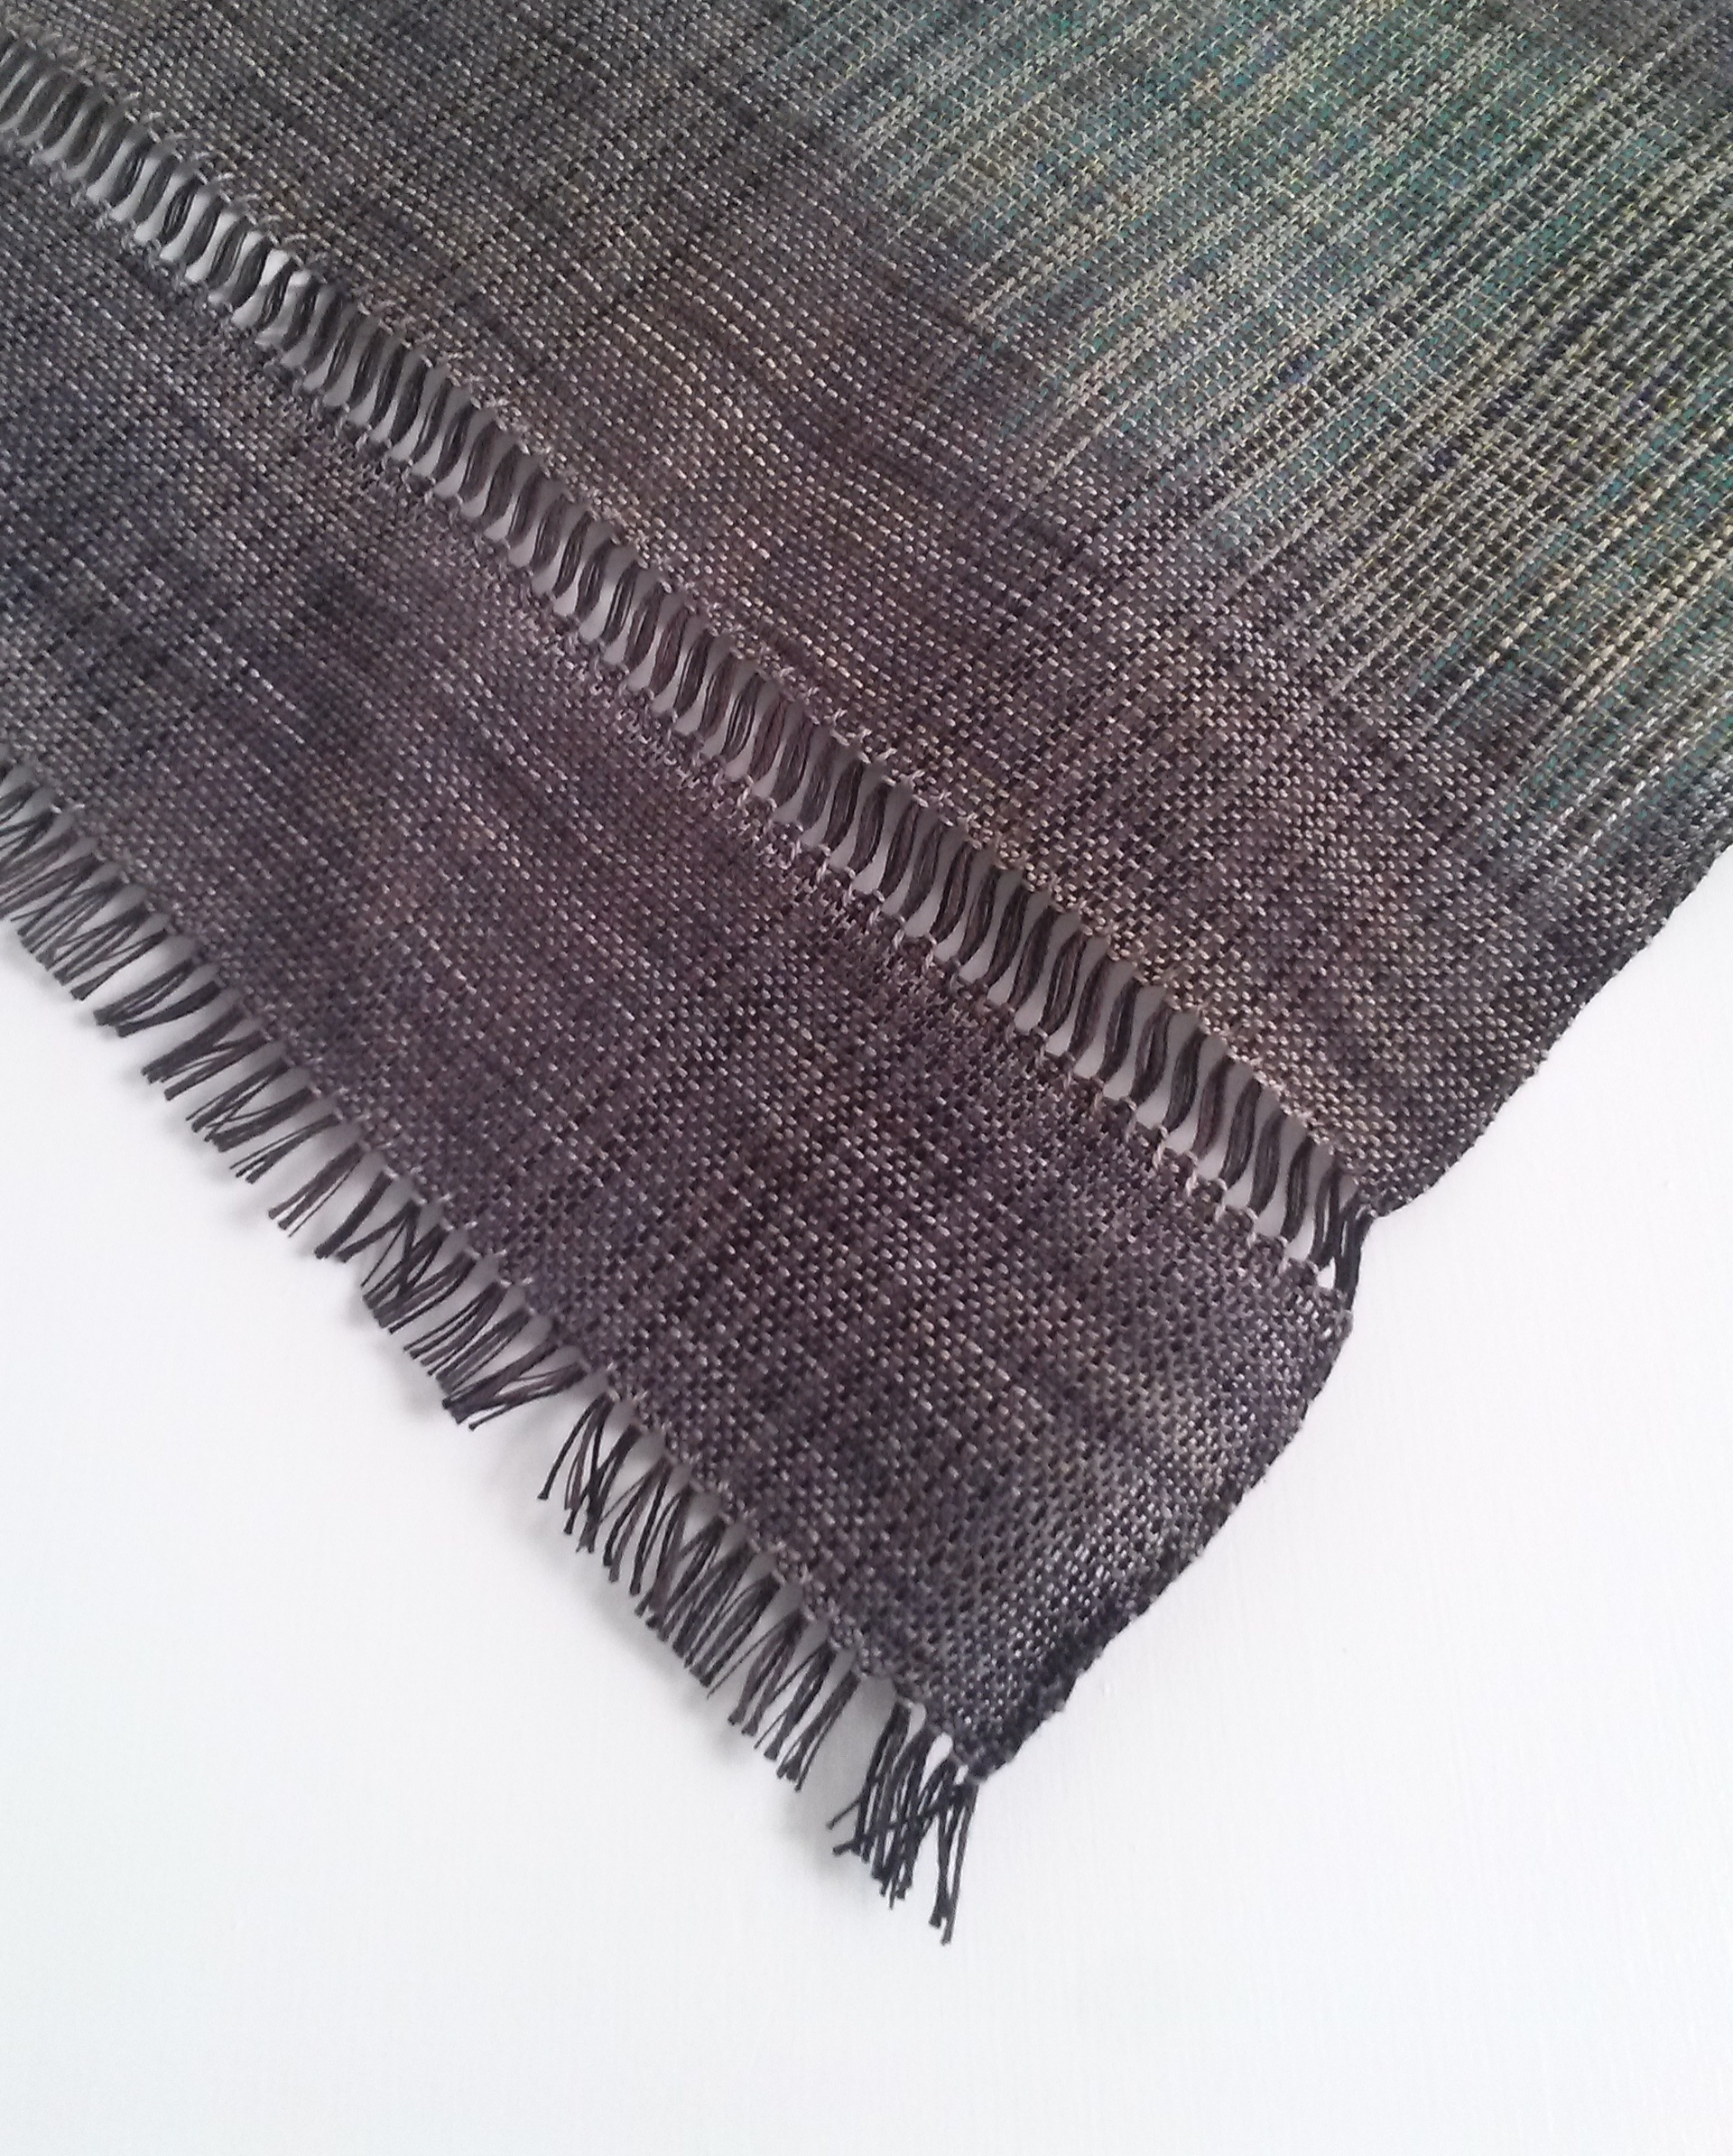 Negative Space, 2014, hand dyed, handwoven mixed fibers